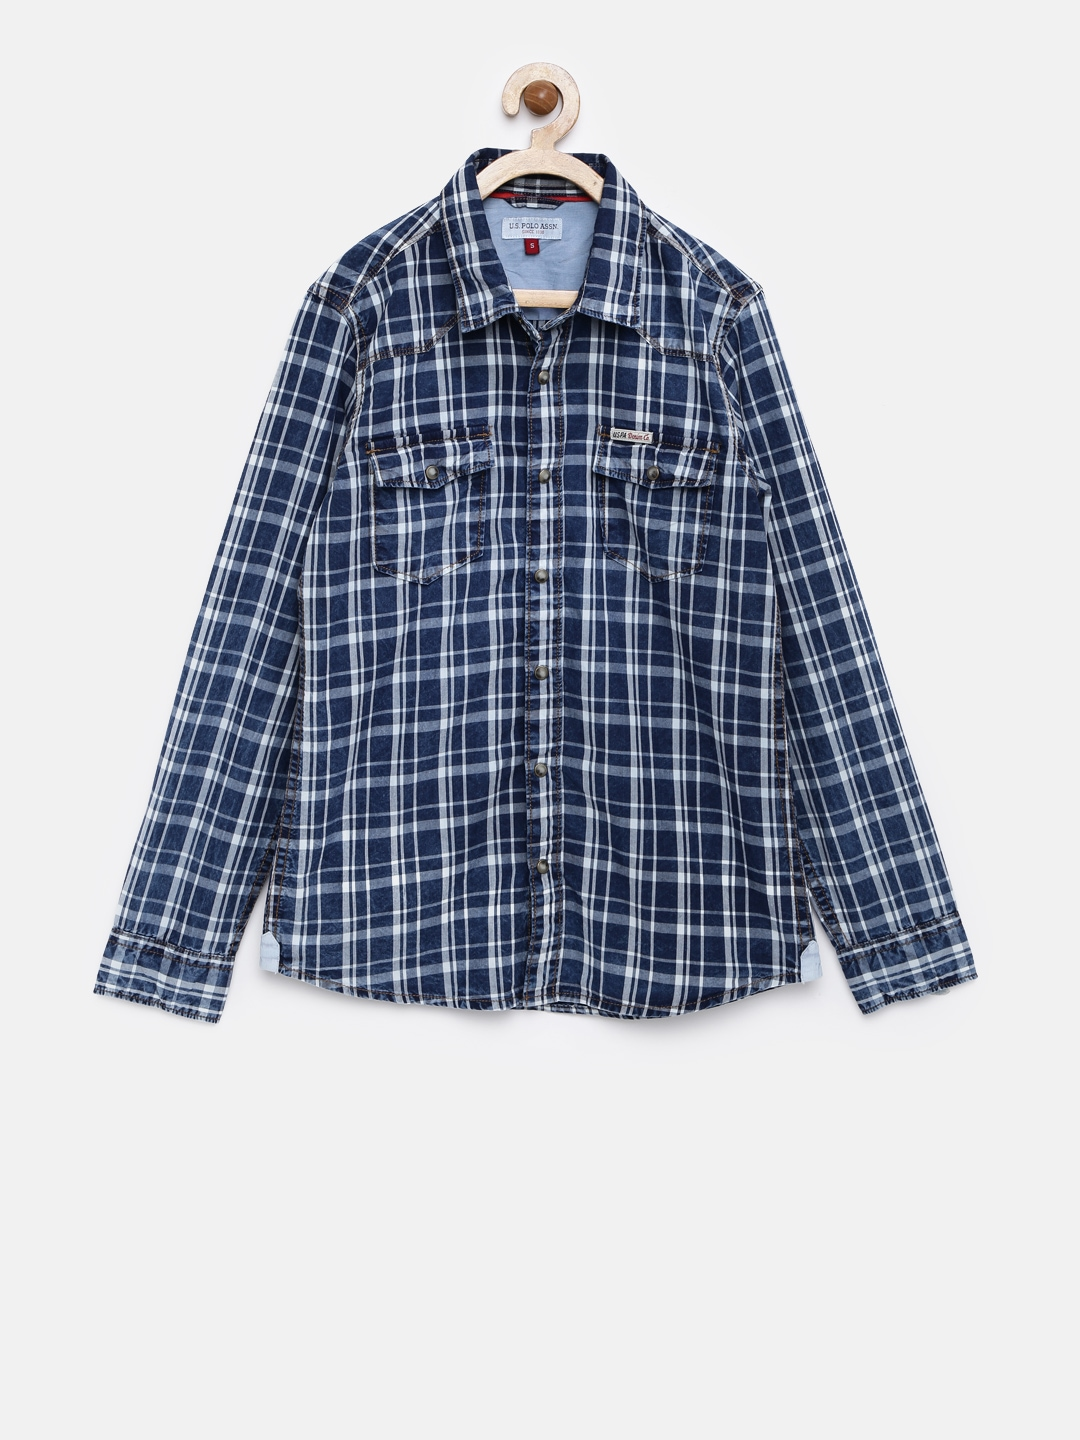 U s polo assn kids boys navy blue checked casual shirt for Us polo shirts offers